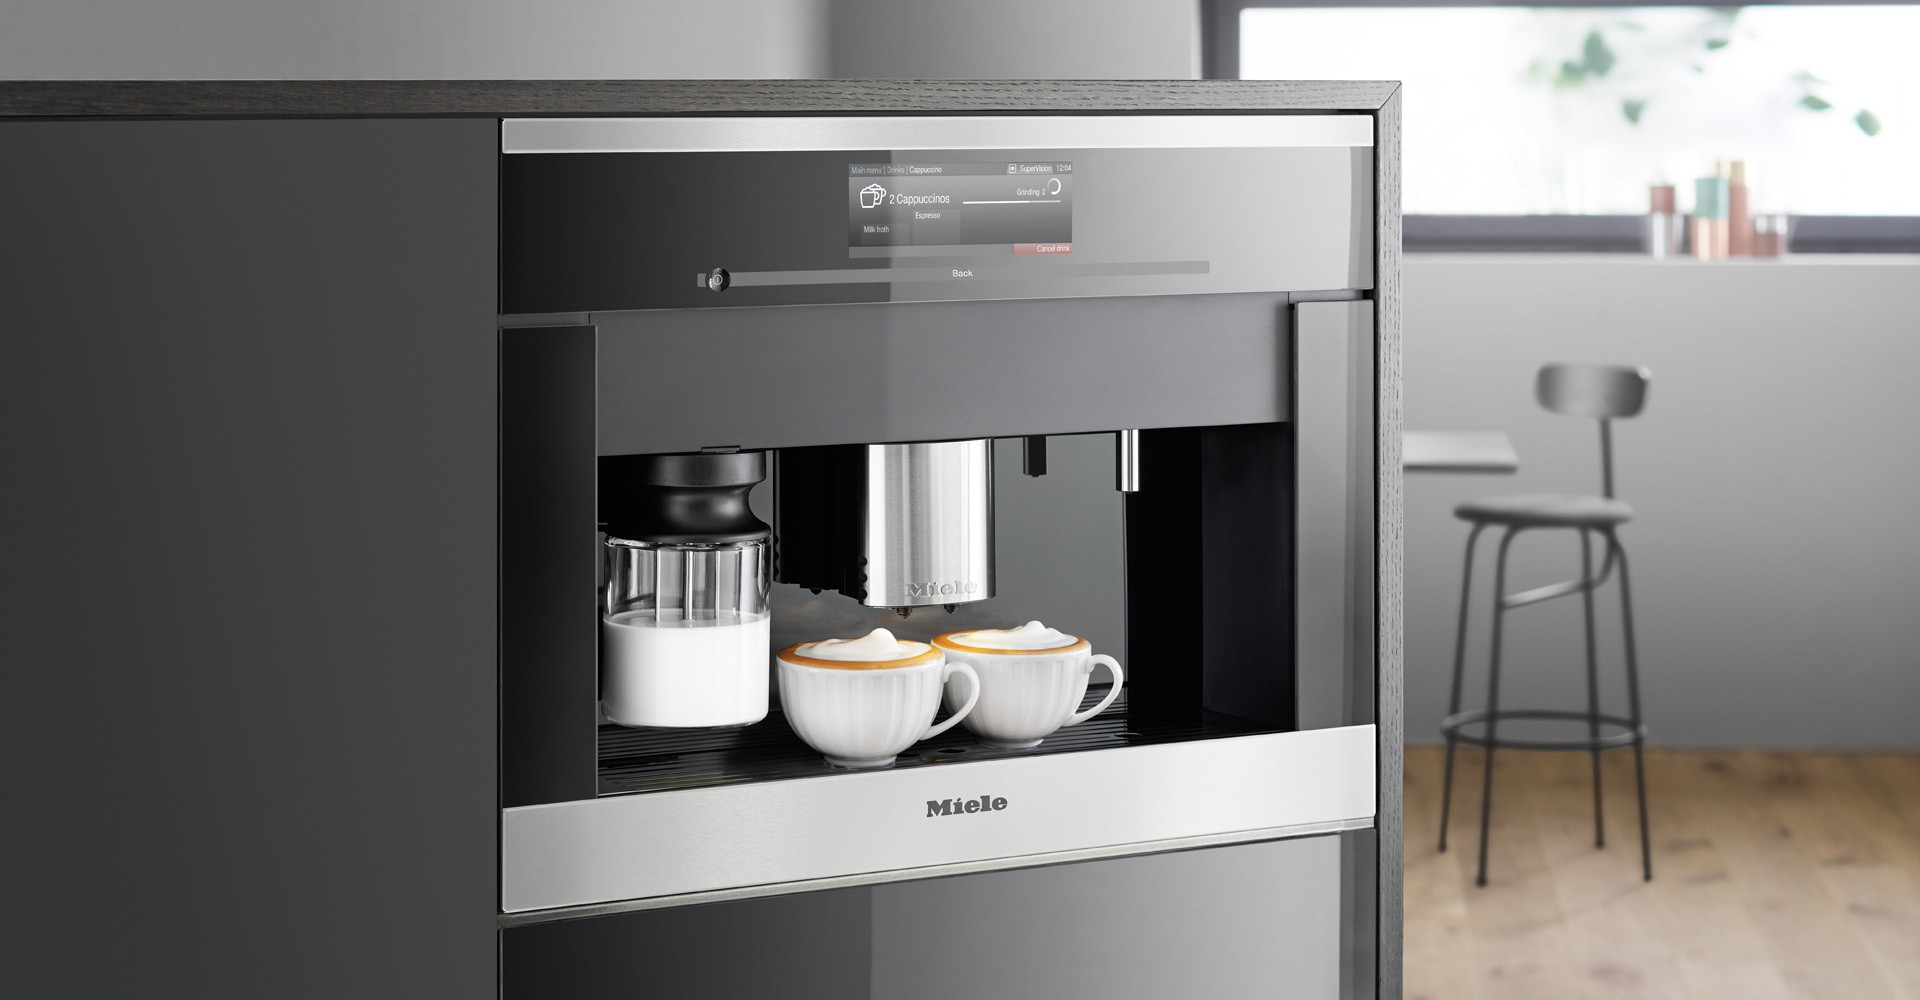 fully inch maker tray plumbed bin settings coffee frother milk front ajmadison cgi water drip hot machine cappuccino smeg automatic function with plumbing